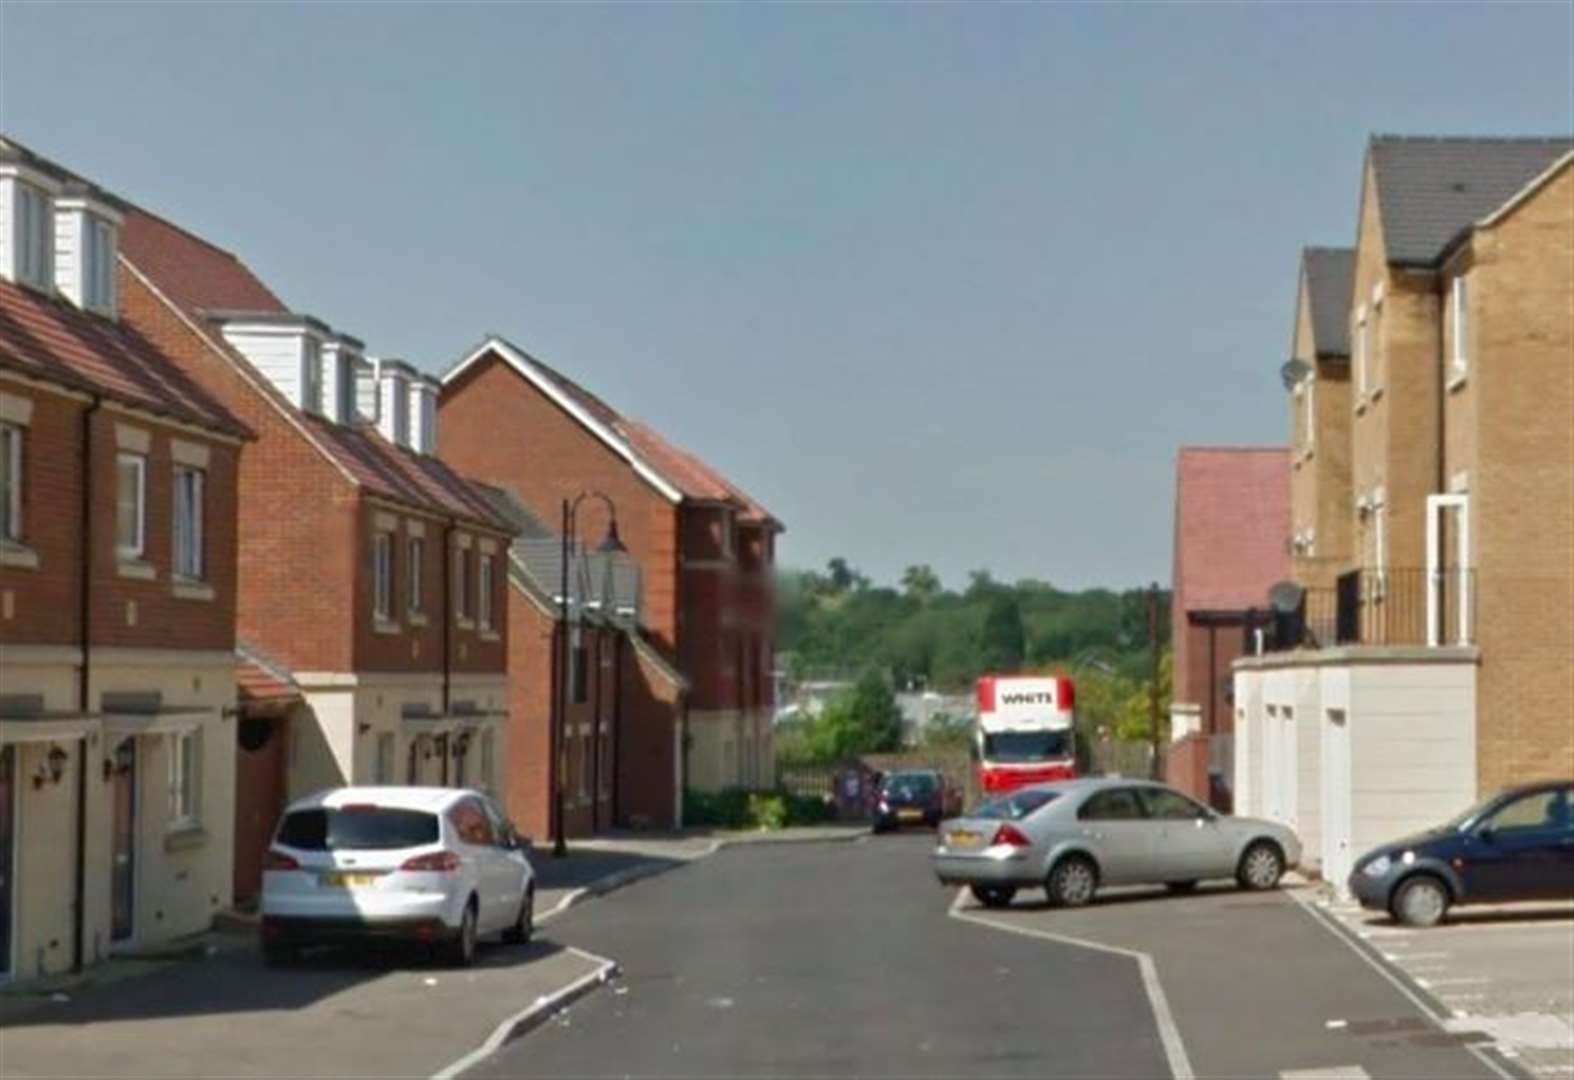 Man sprayed with 'unknown substance' during fight